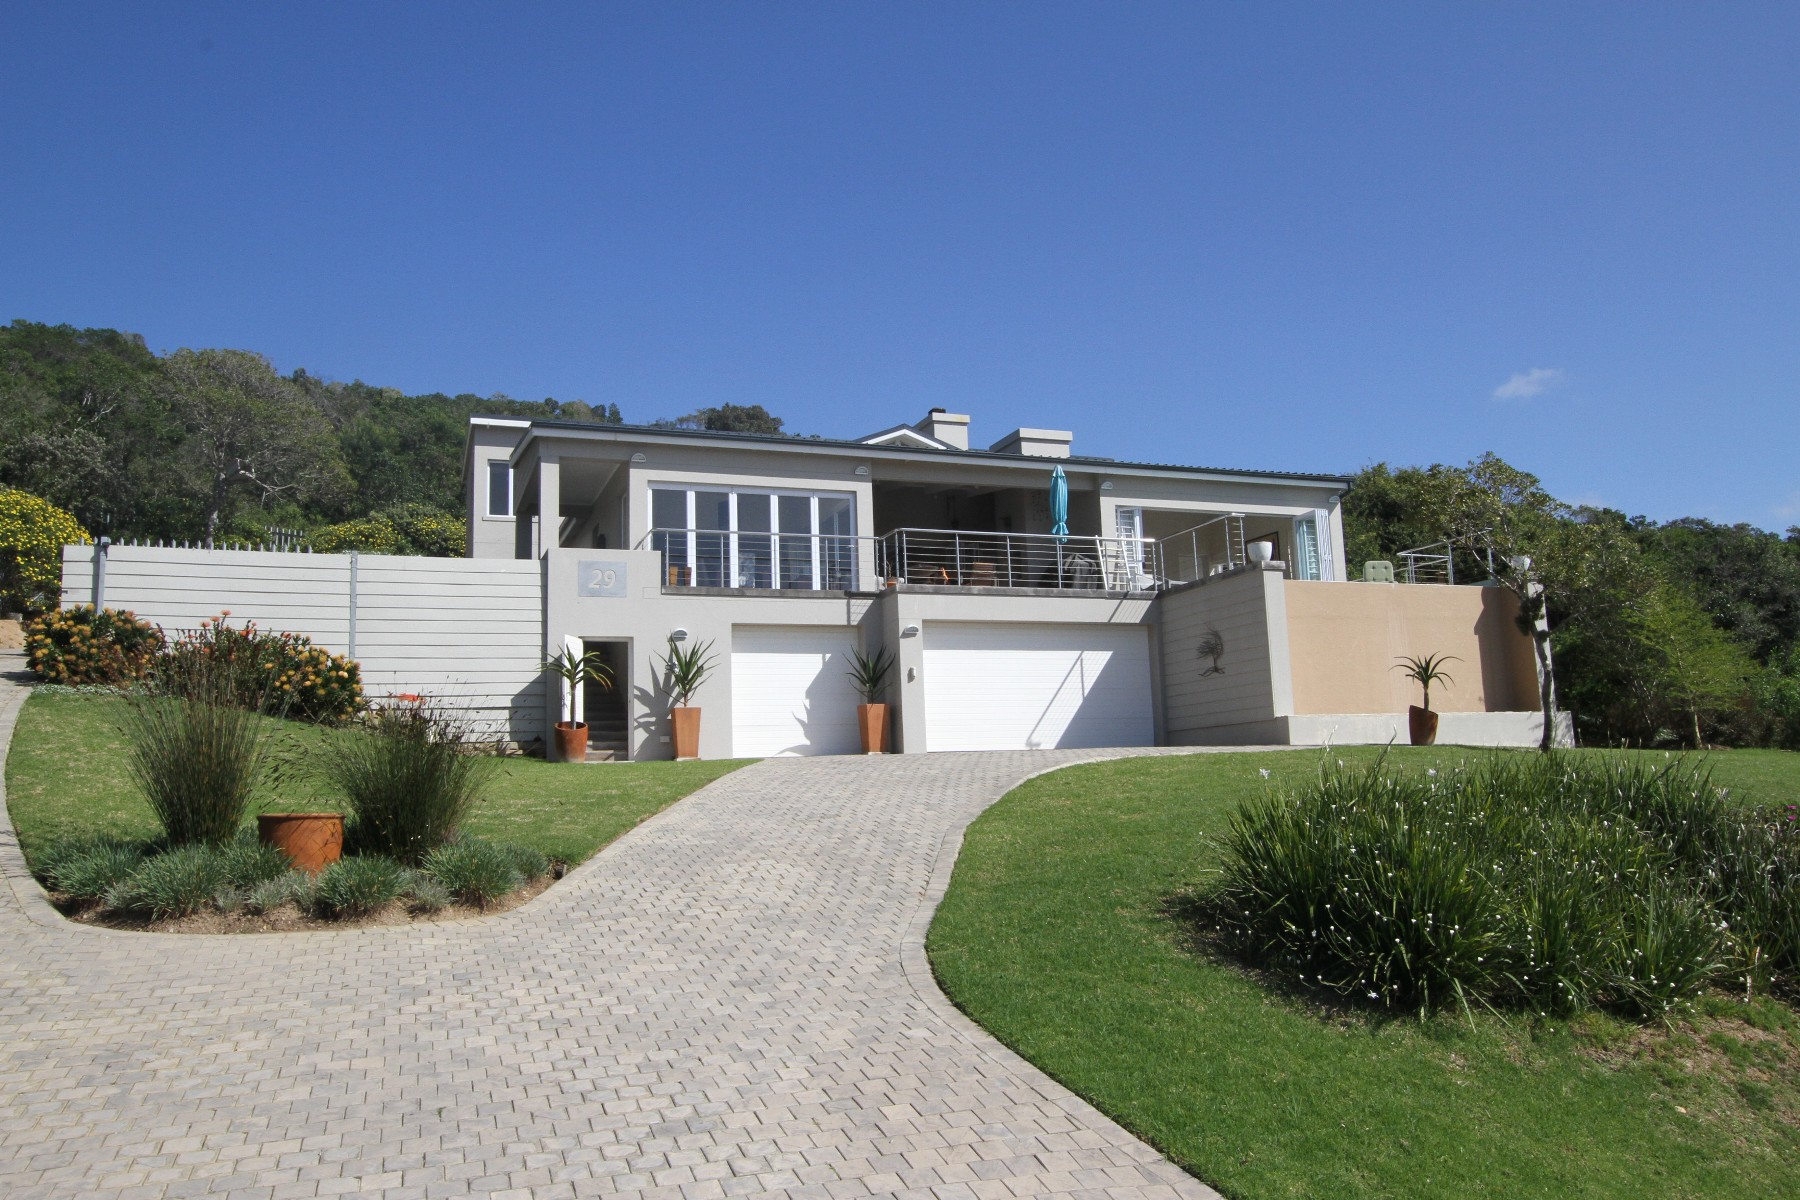 Single Family Home for Sale at Good Views in Whale Rock Plettenberg Bay, Western Cape, 6600 South Africa